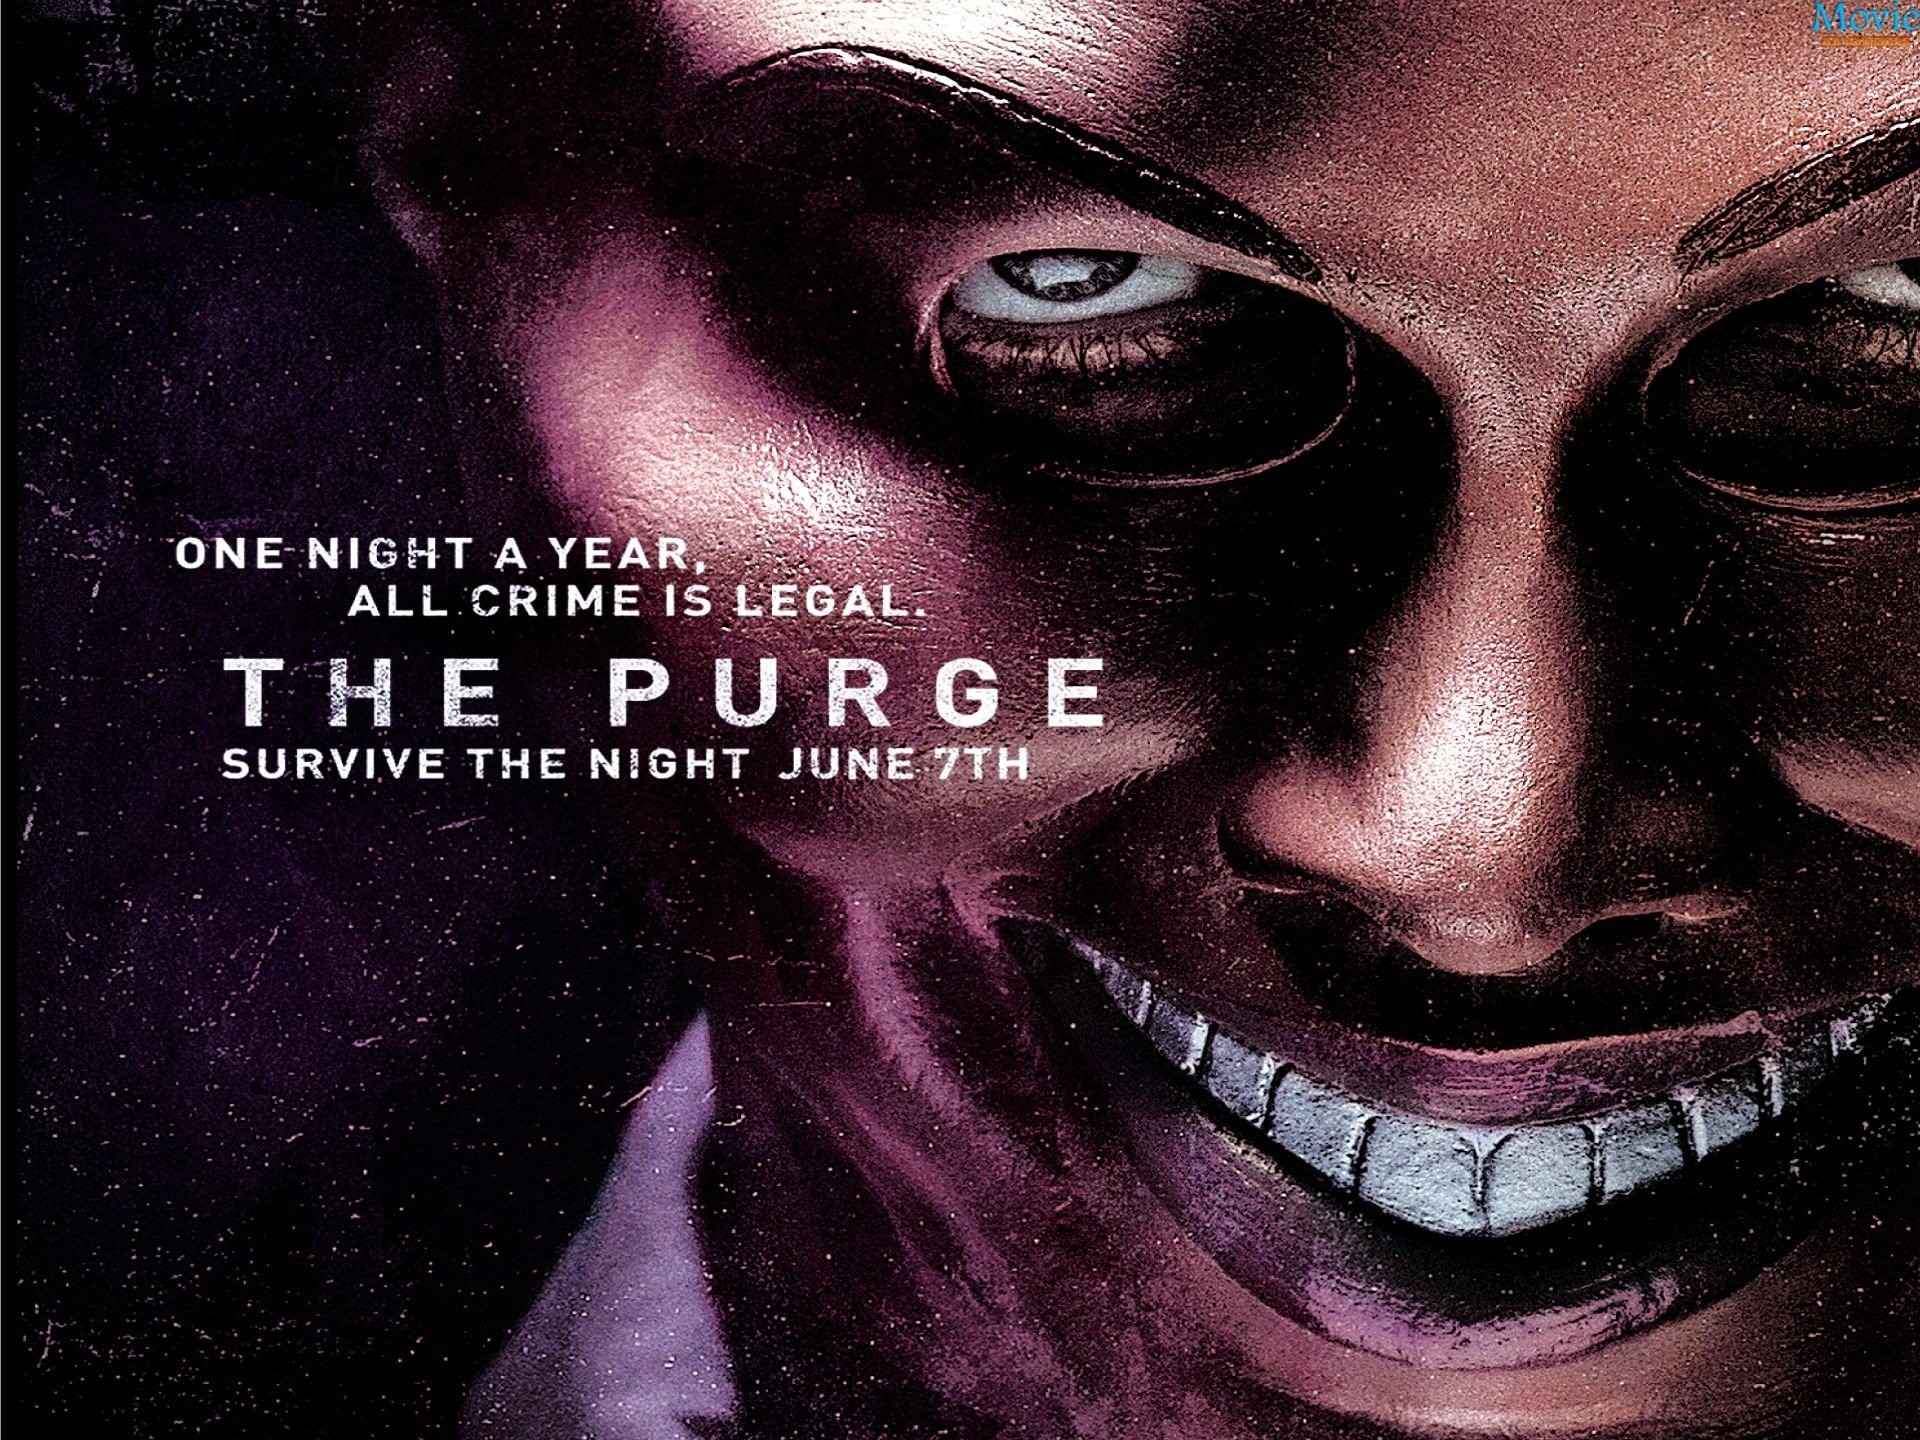 The Purge Election Year Poster Wallpapers: The Purge Wallpapers (65+ Images